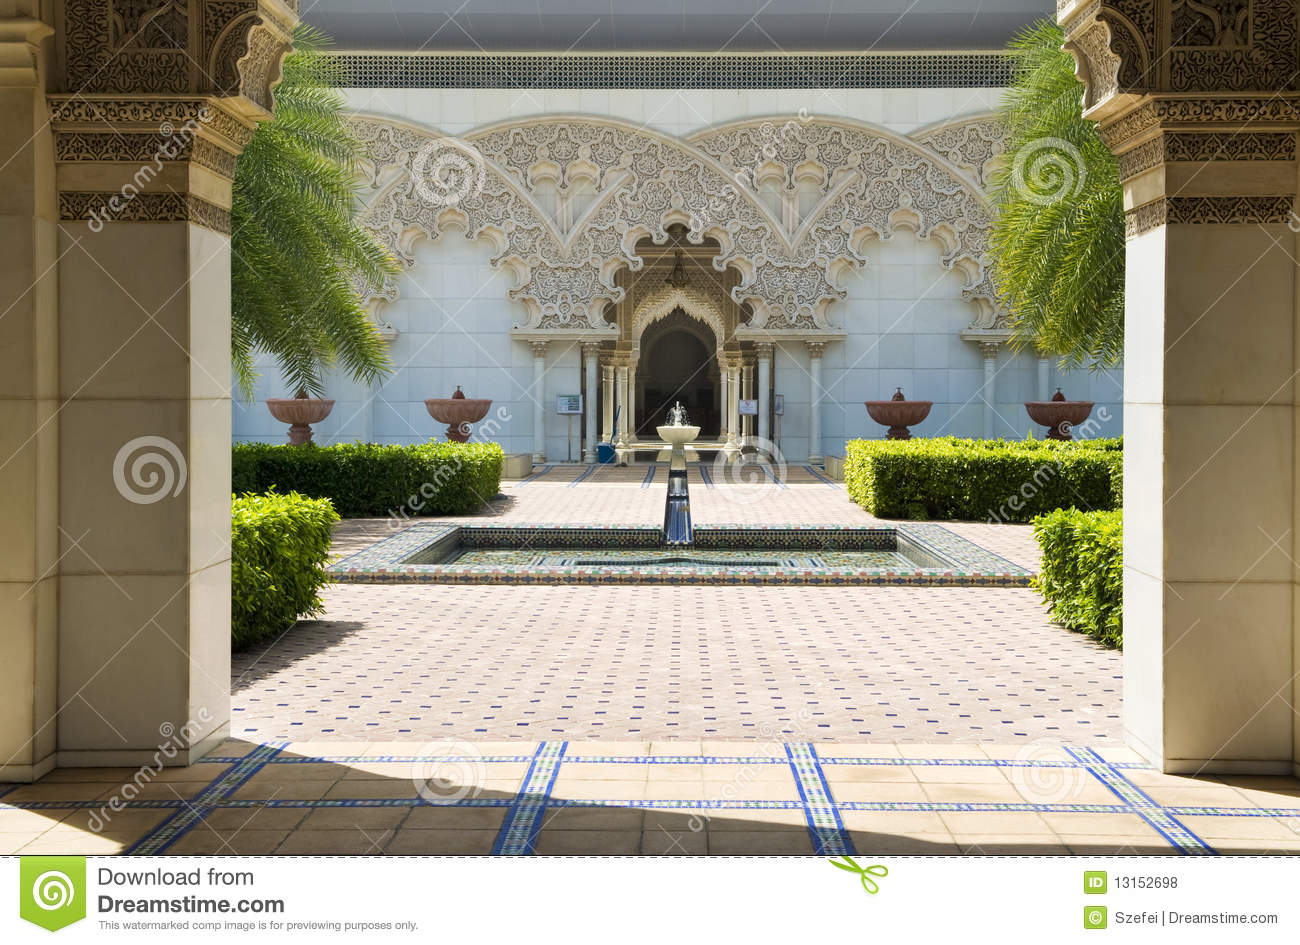 Jardin int rieur d 39 architecture marocaine photos libres de for Jardin interieur